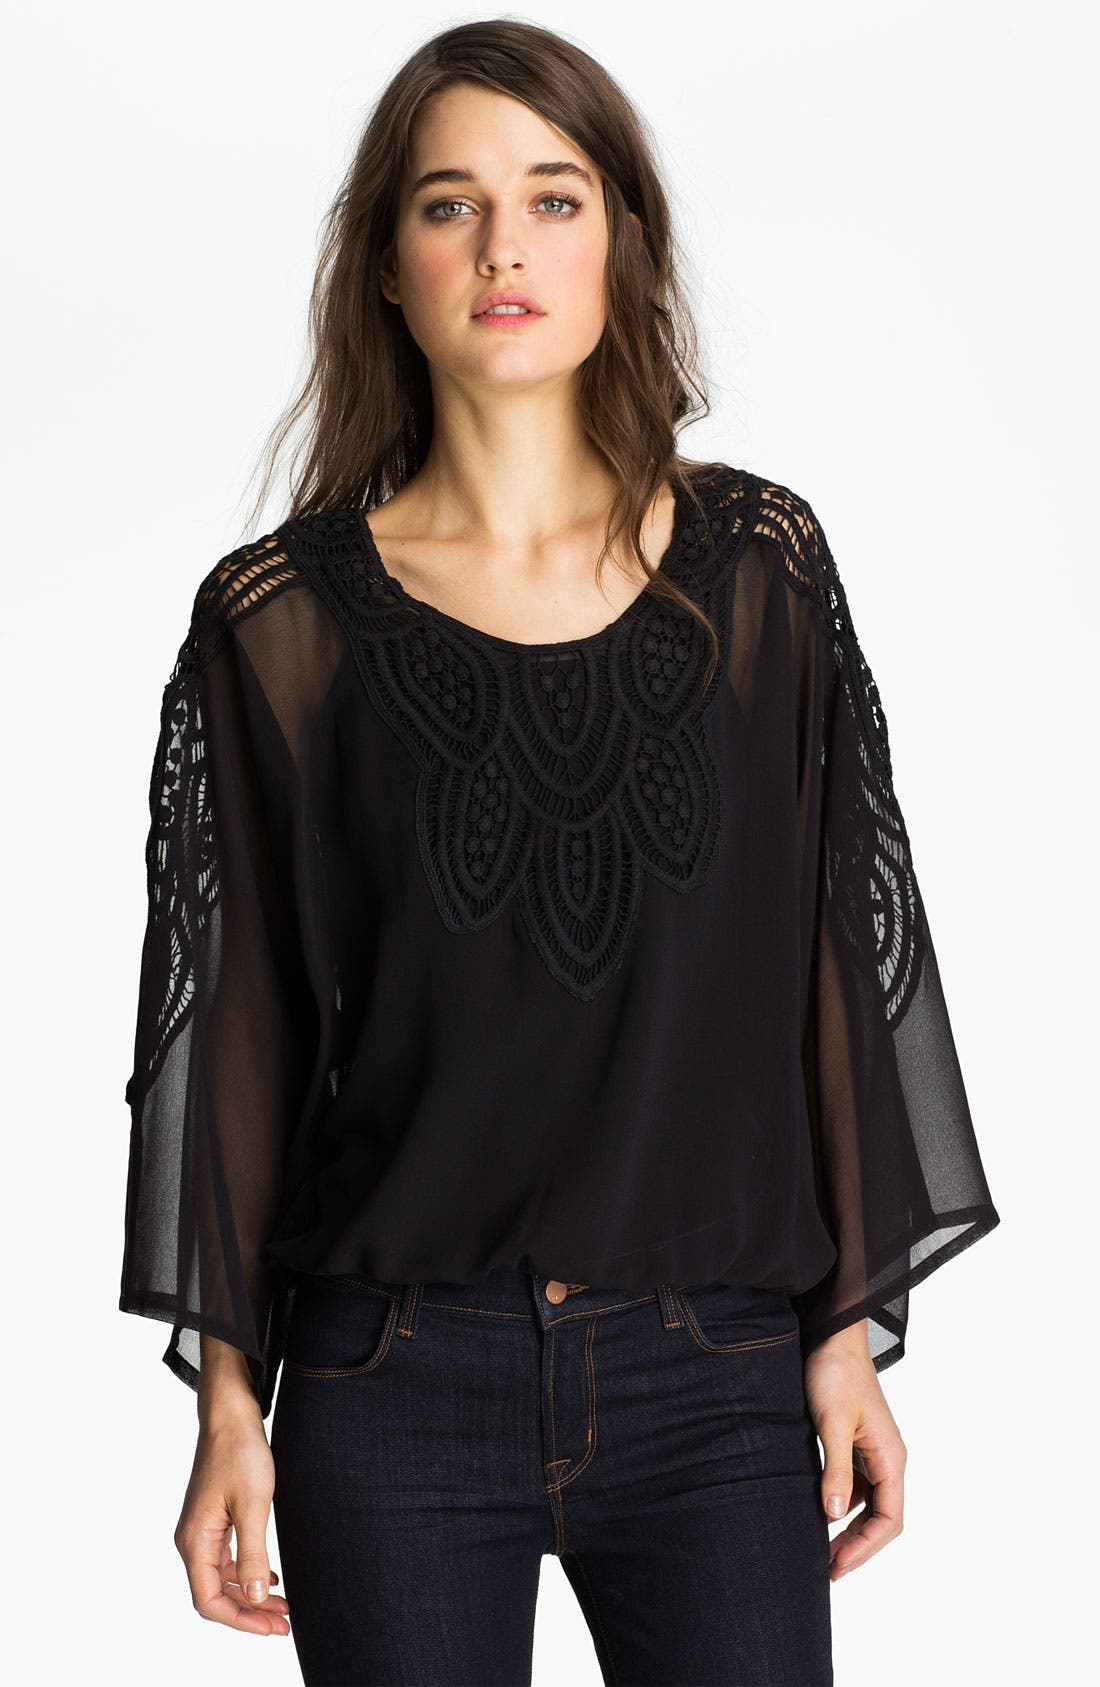 Main Image - Sanctuary 'Santa Fe Nights' Crochet Chiffon Top